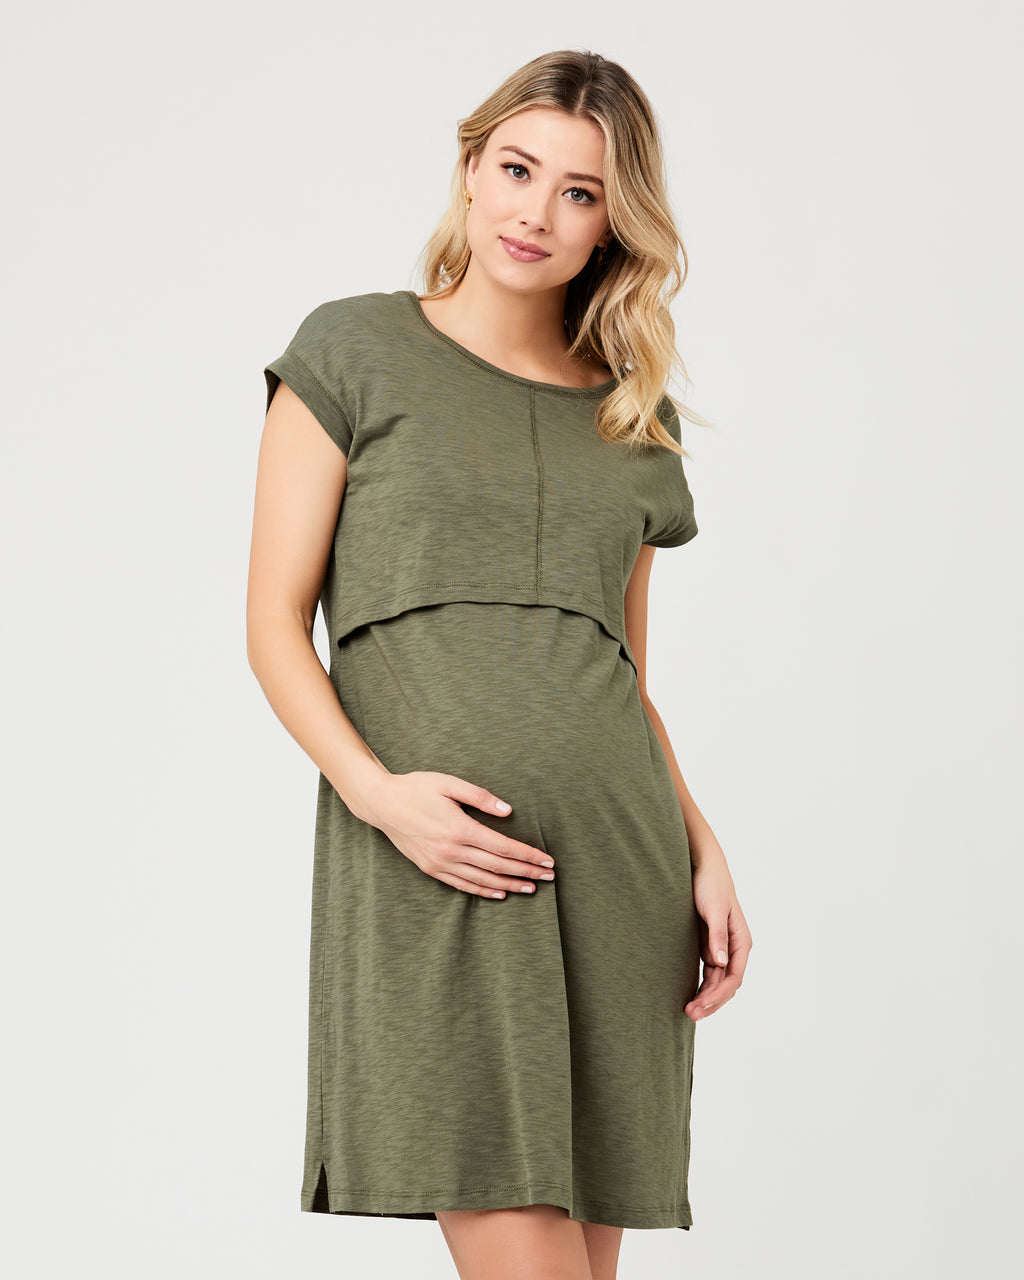 Roxie Nursing Dress - Yo Mama Maternity